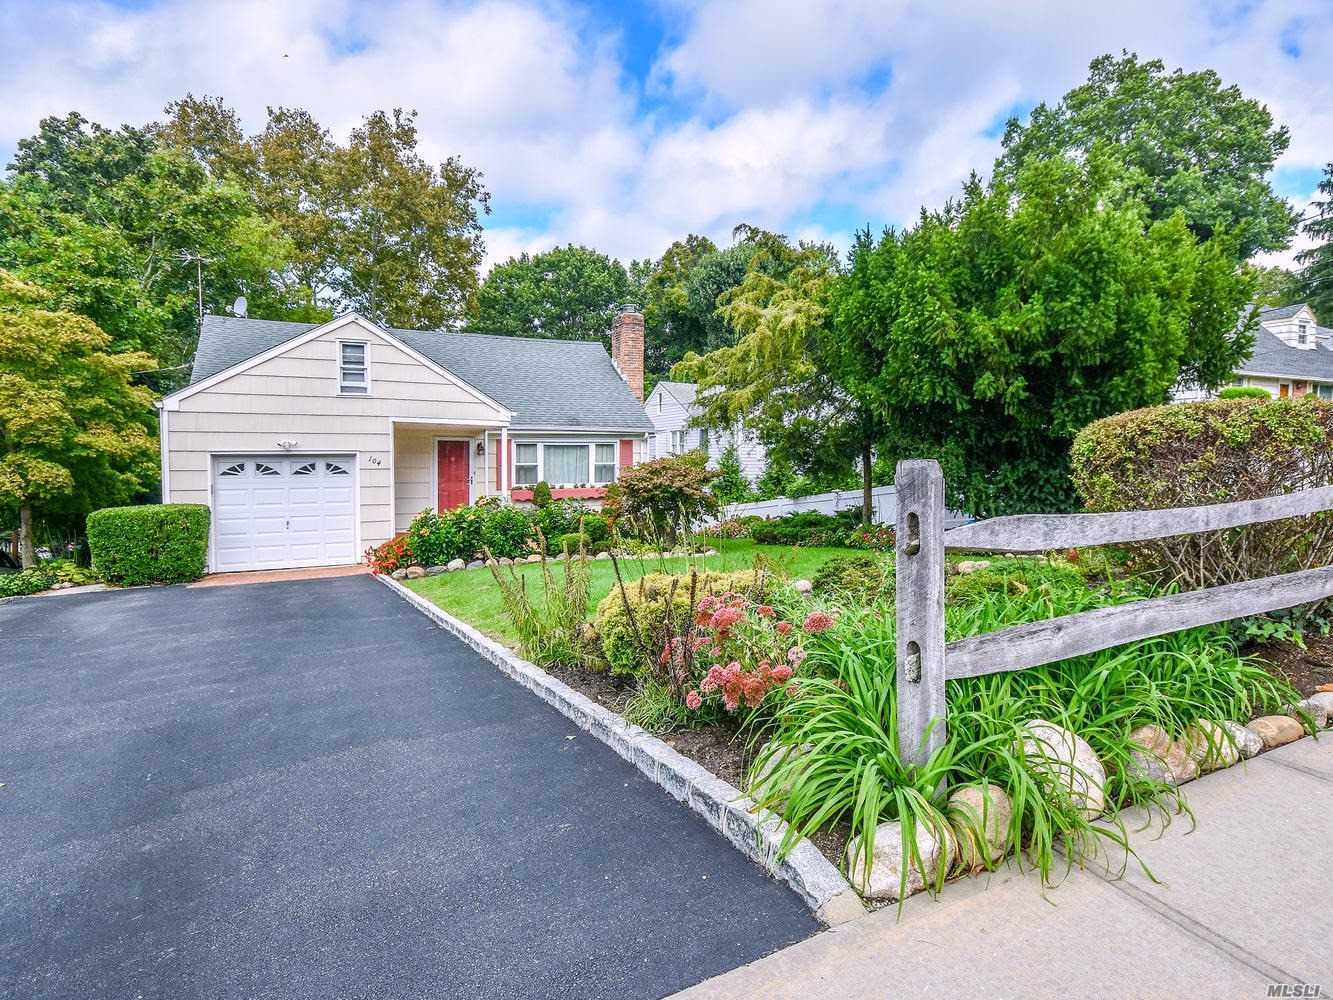 Immaculate Expanded Ranch On Deep Lot. Living Room With A Wood Burning Fireplace, Formal Dining And Eik. Updated Full Bath On First Floor. Large Master Bedroom Suite On Second Floor W/Full Bath. Walk Out Lower Level With Guest Suite And Full Bath. Large Fenced Backyard Off Of Quiet Cul-De-Sac. Convenient To Blue Ribbon Glenwood Landing School And Beach.